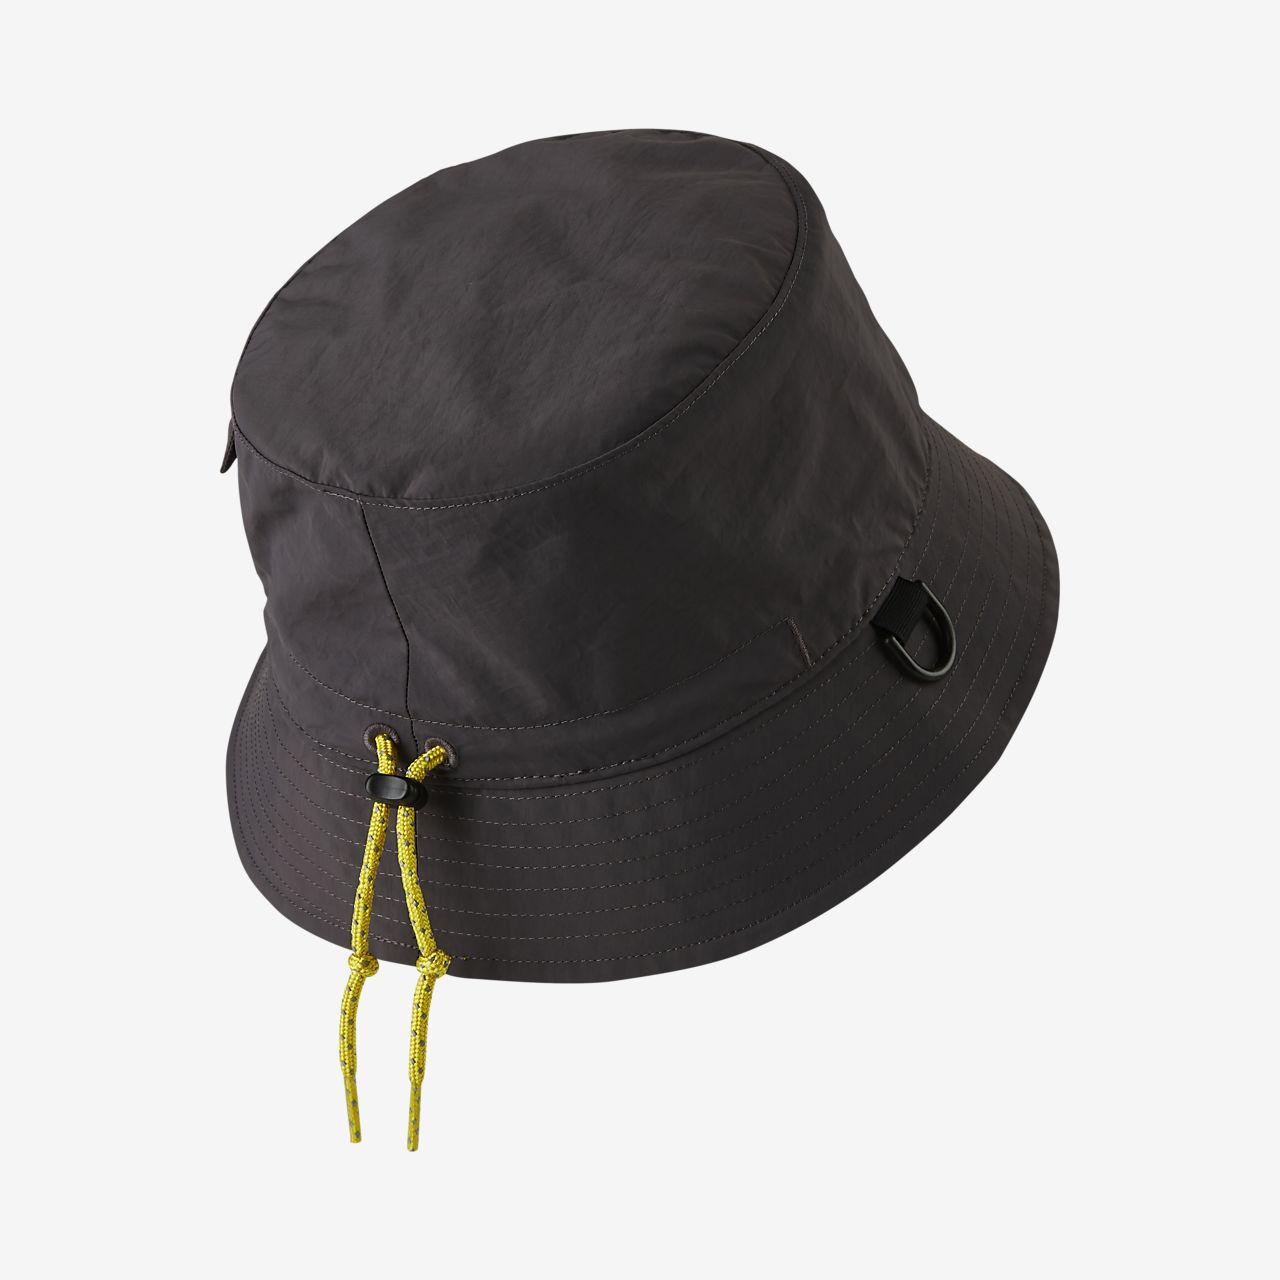 b4ed404d5 Low Resolution Nike Bucket Hat Nike Bucket Hat